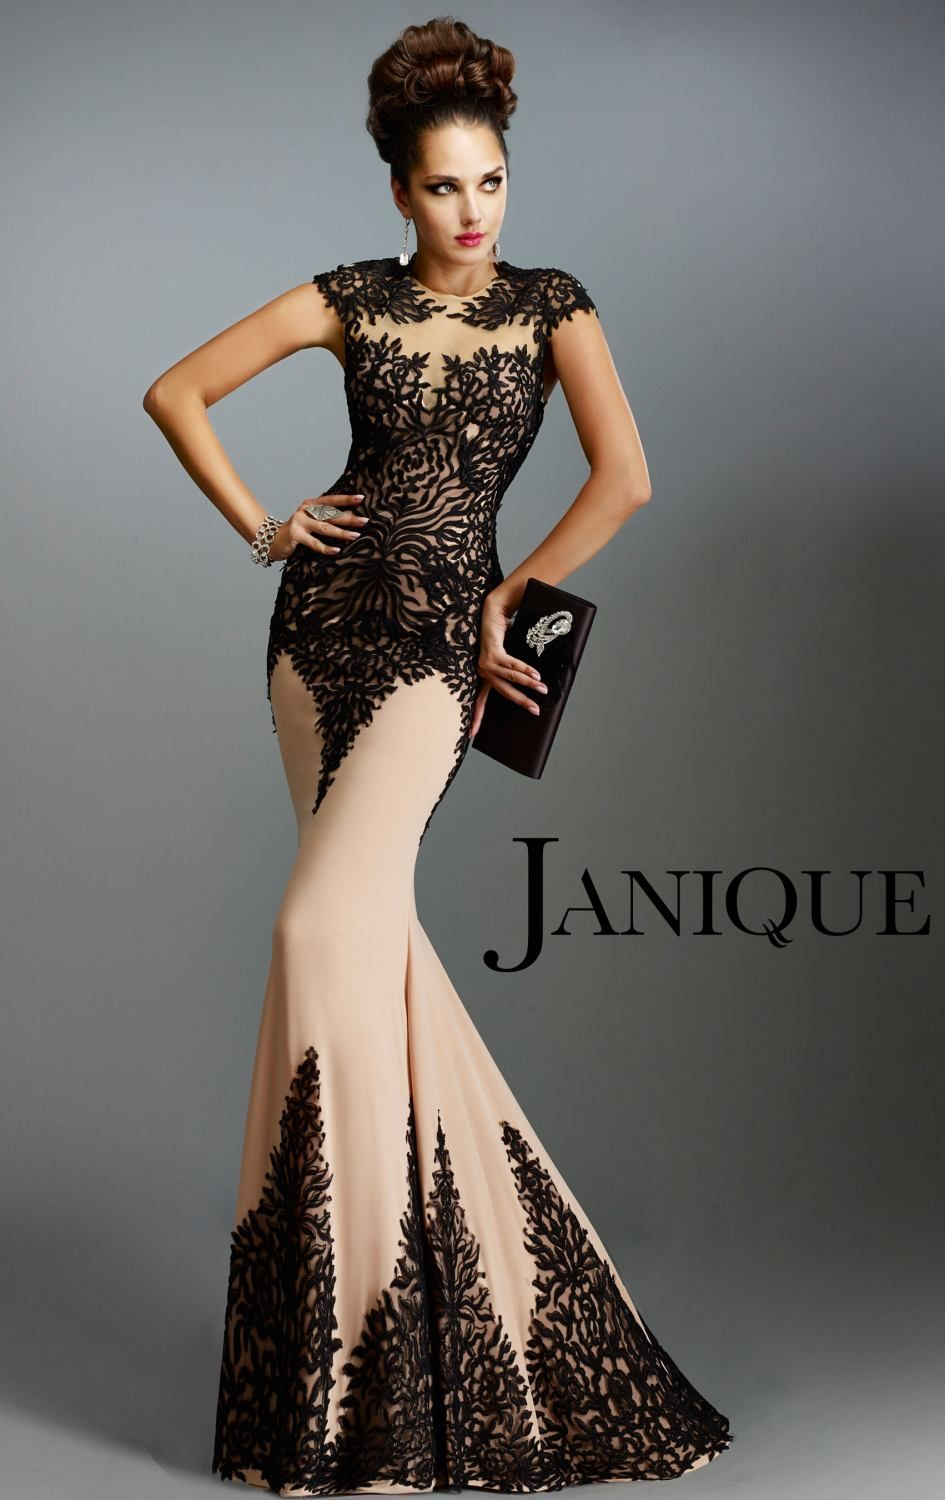 Janique k dress missesdressy classy clothing pinterest